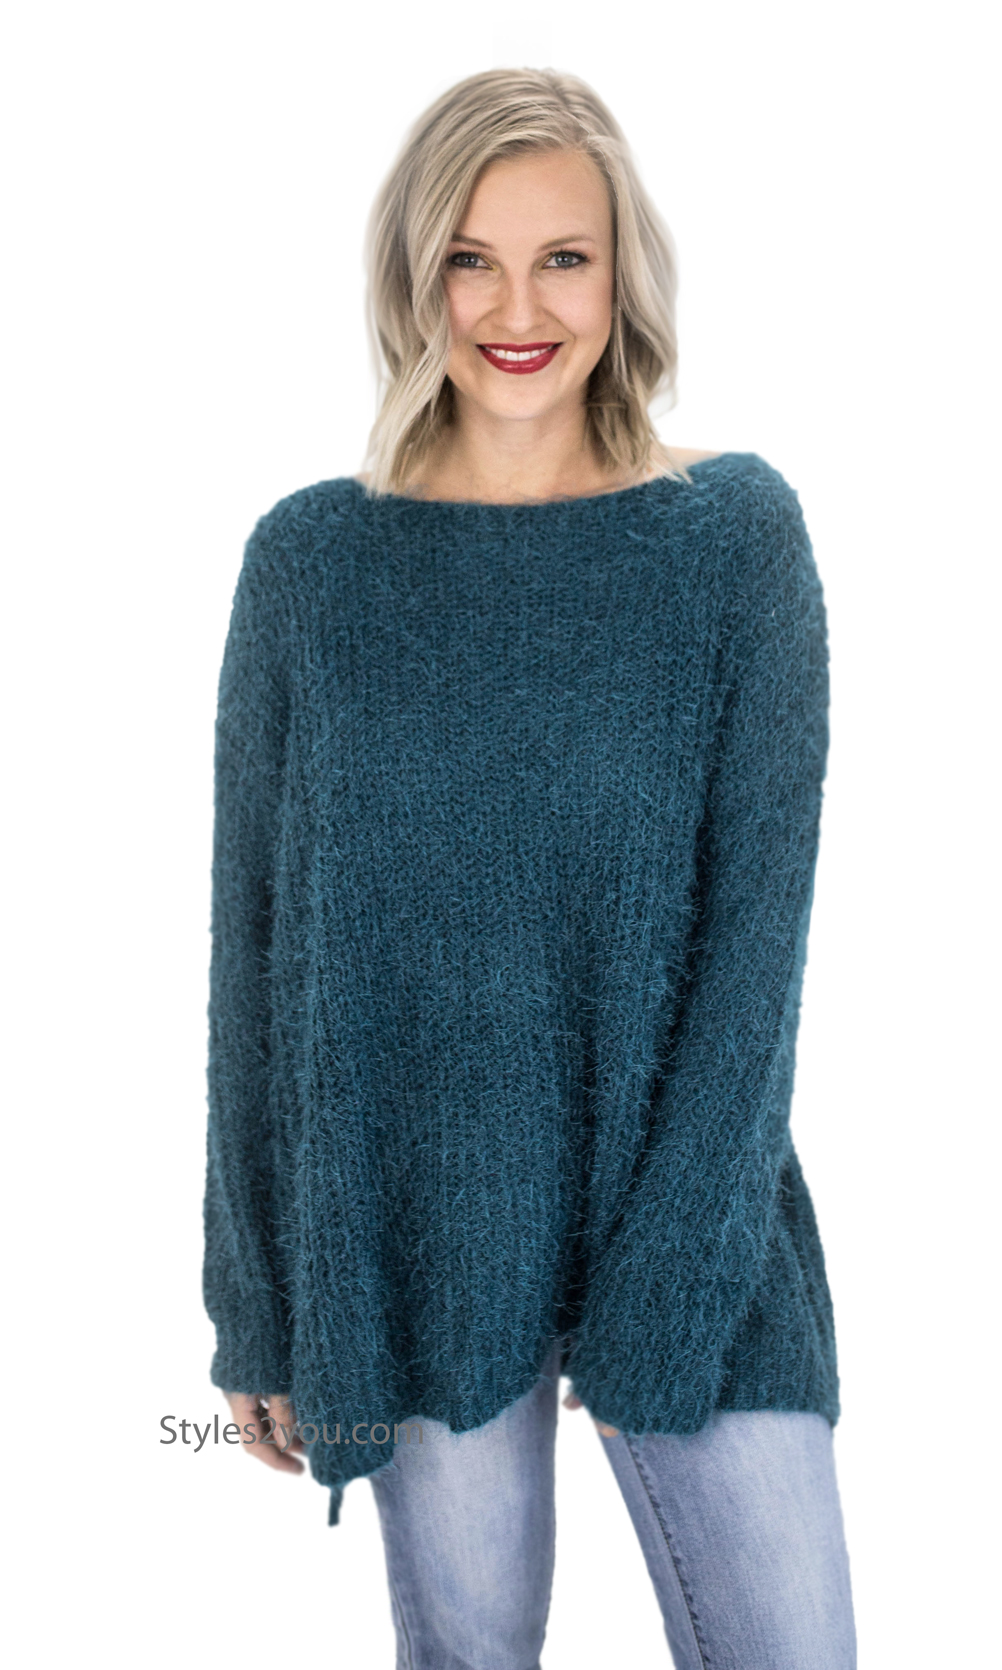 Champaign Ladies Oversized Loose Fitting Sweater Tunic In